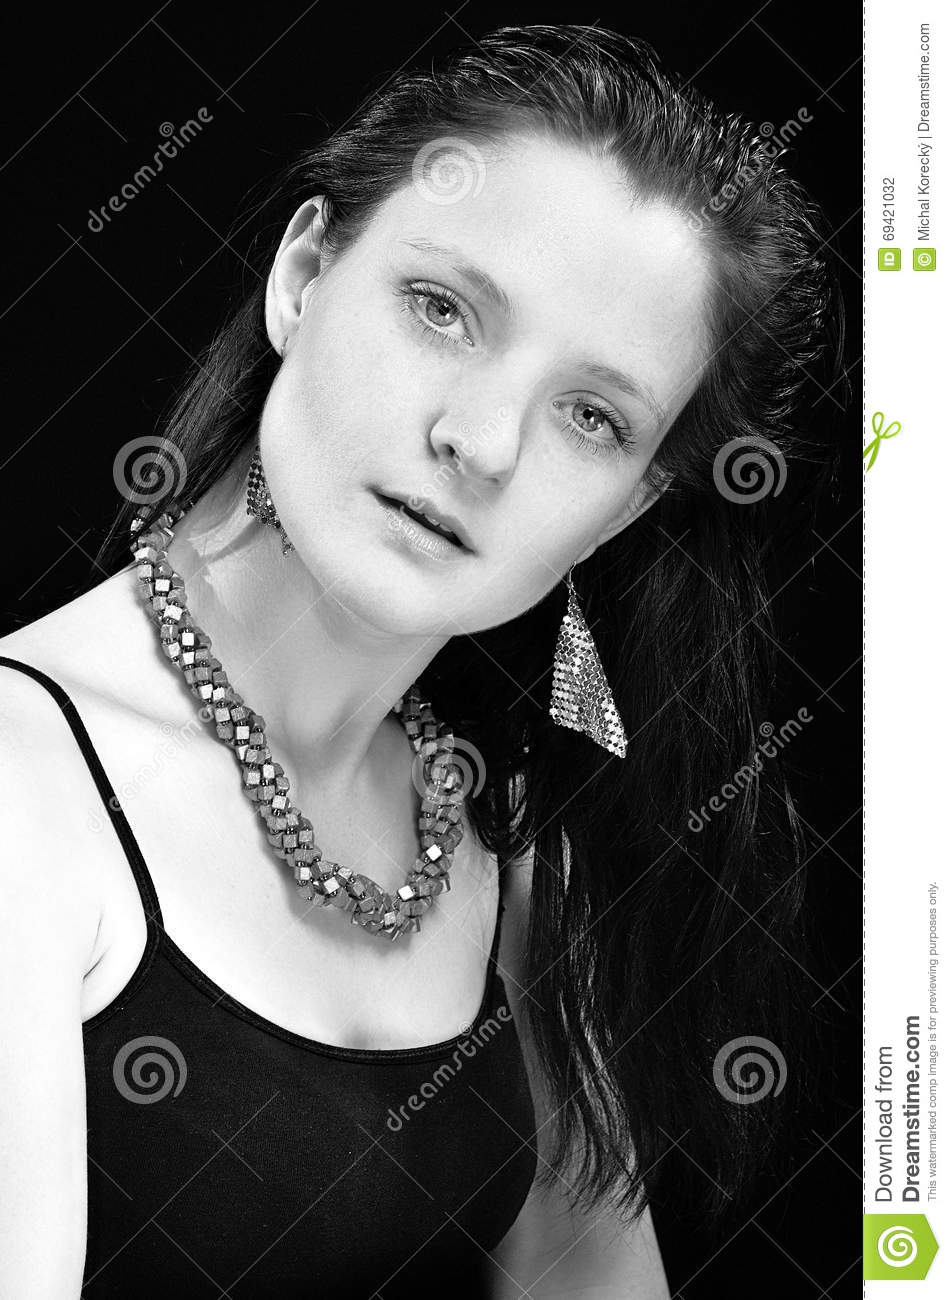 Woman on black and white portraits with necklace and earrings